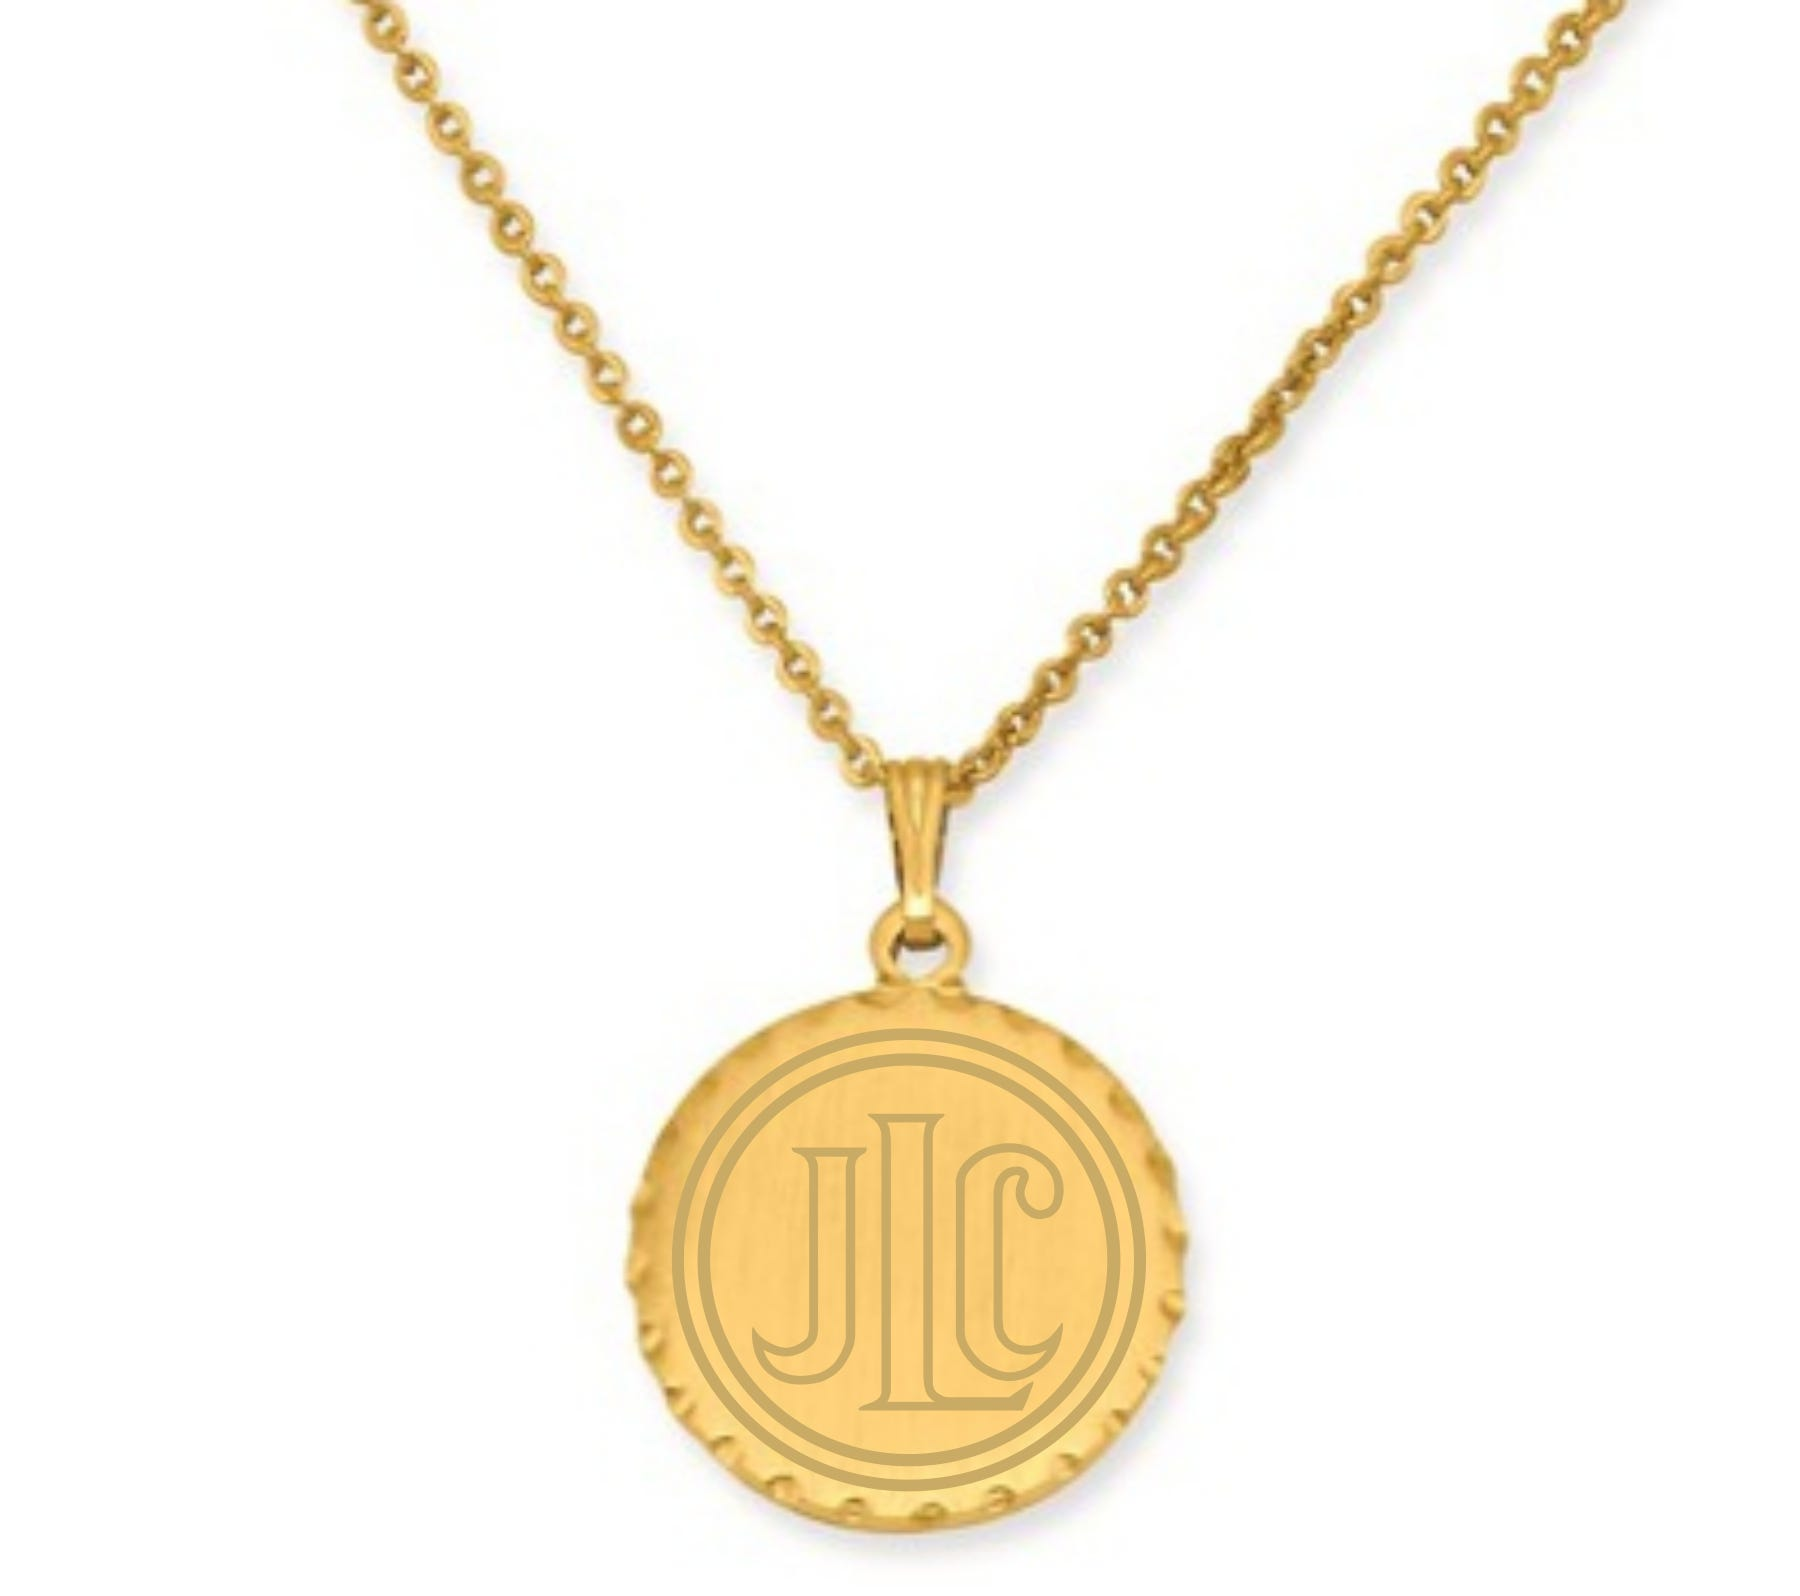 Junior League of Chicago Disc Pendant in Gold Plated Stainless Steel